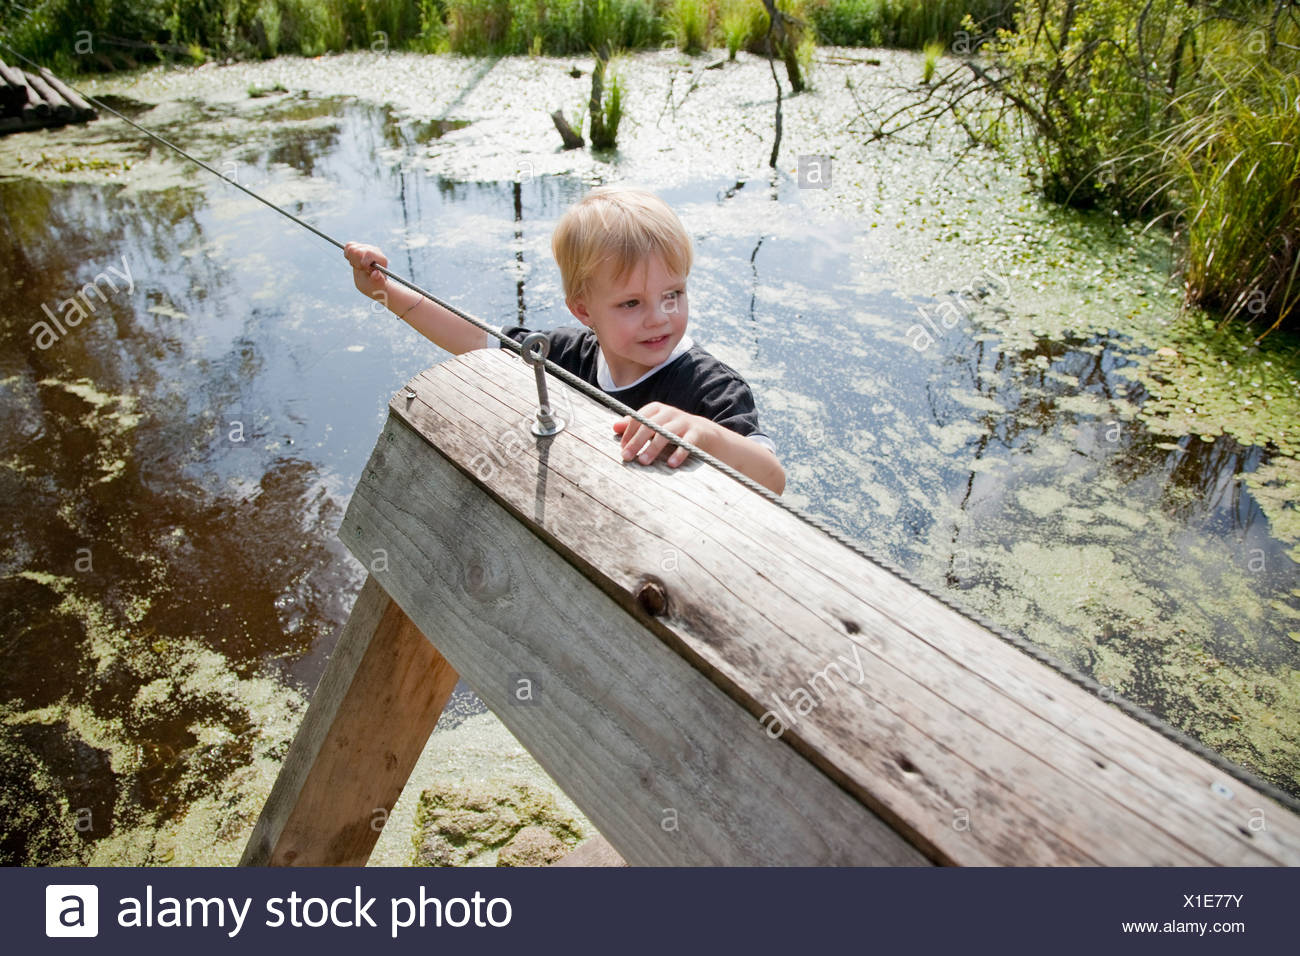 Boy on a float - Stock Image